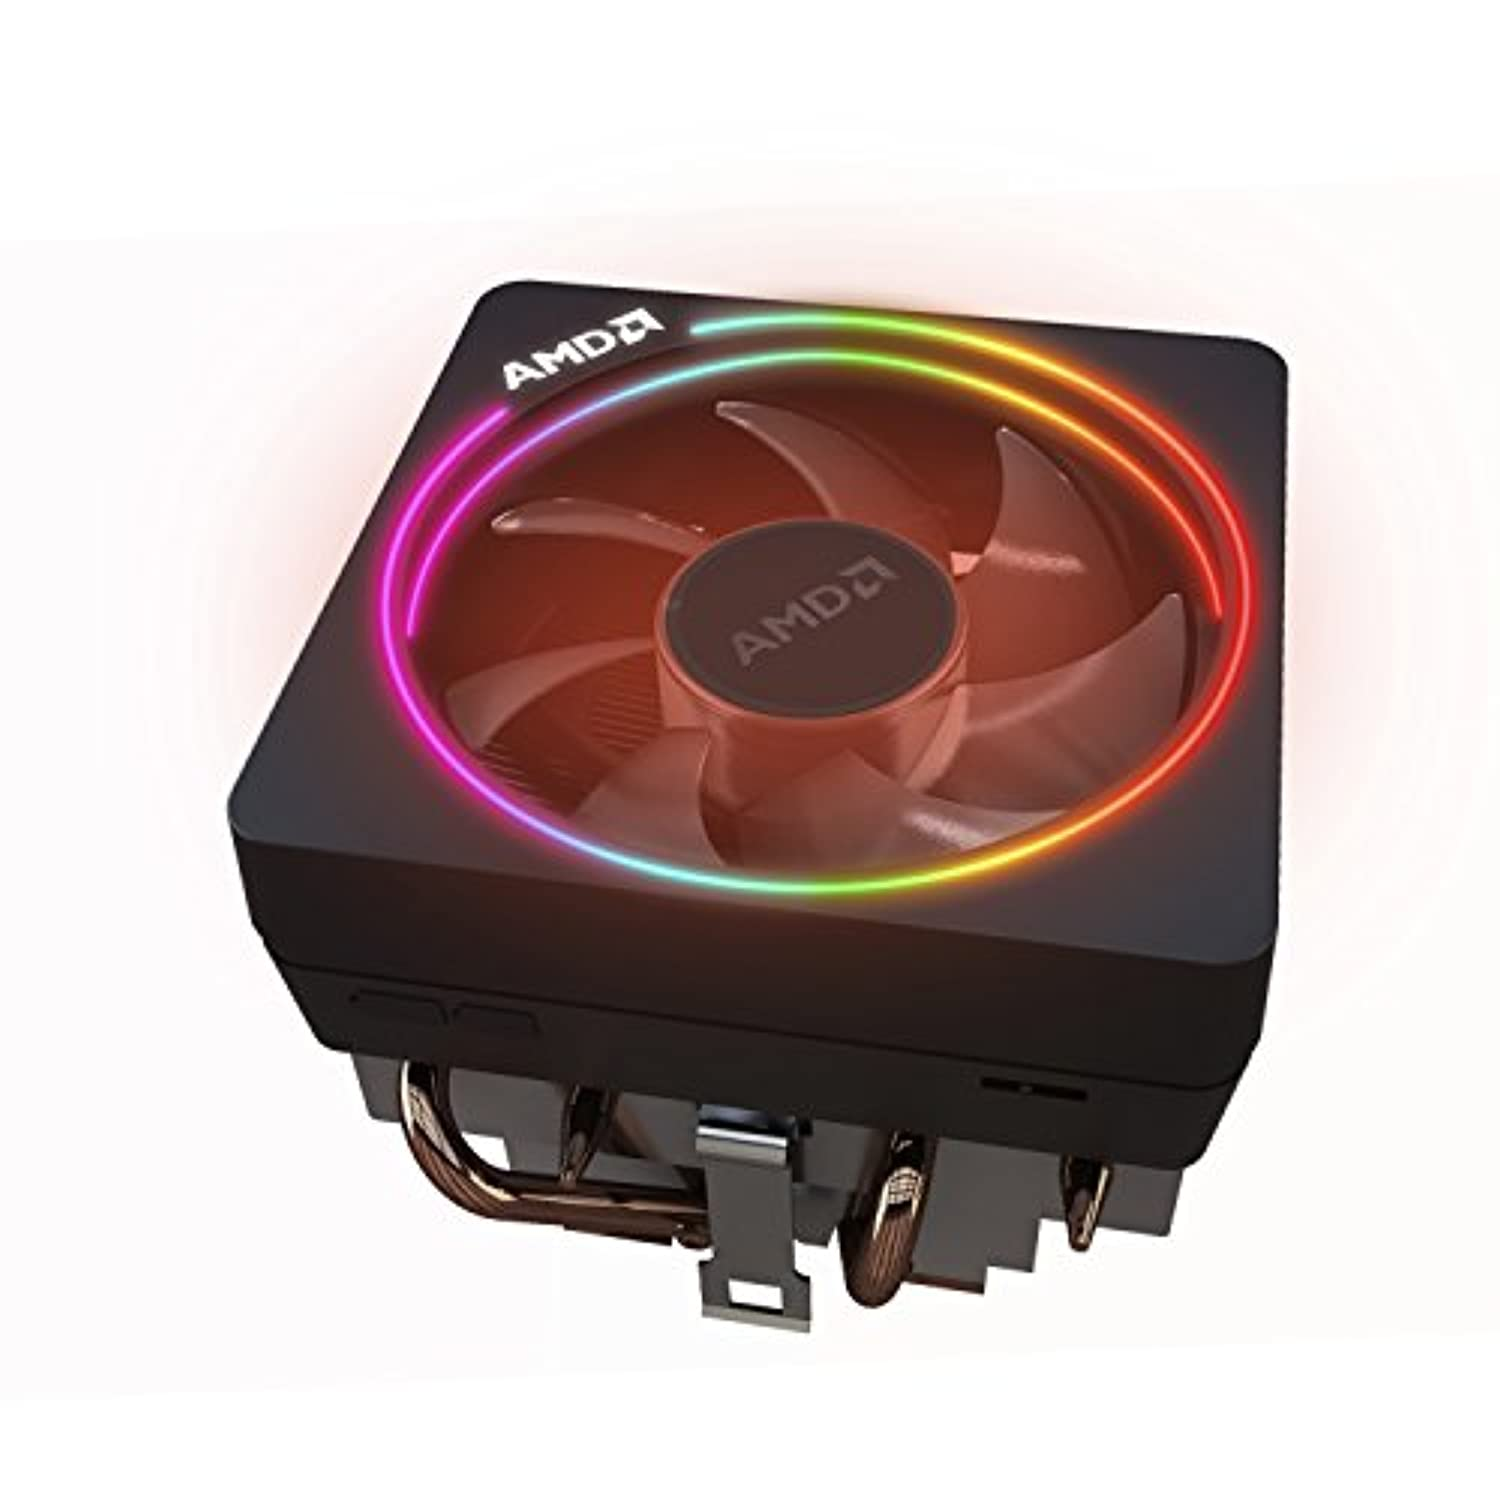 Classier: Buy AMD AMD Ryzen 7 2700X Processor with Wraith Prism LED Cooler - YD270XBGAFBOX